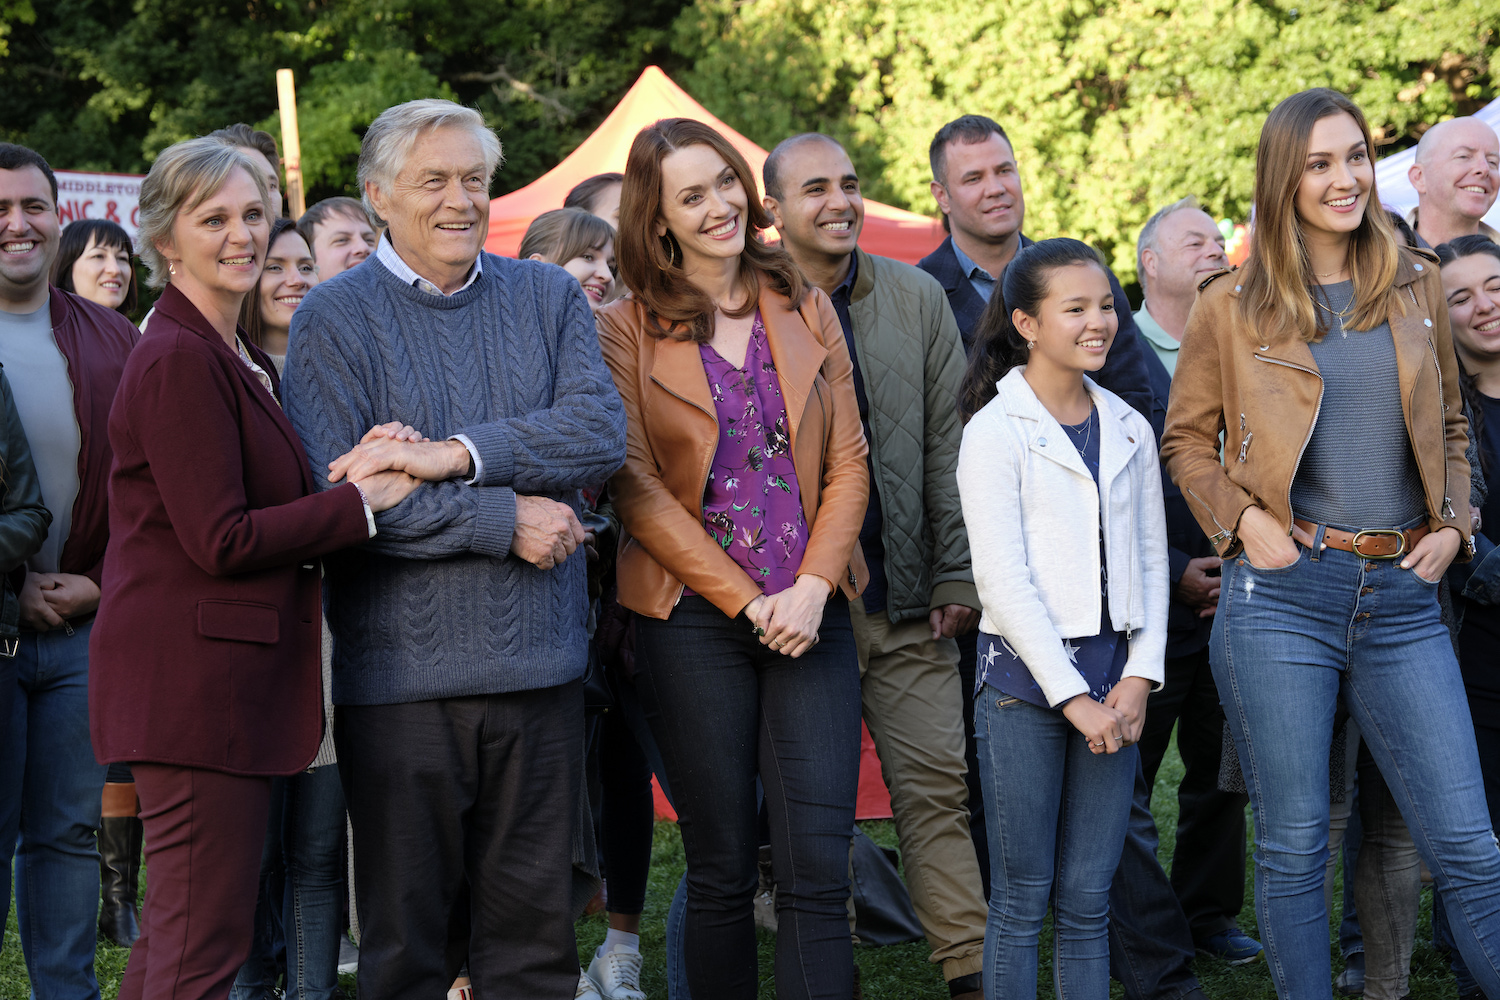 Middleton residents at chili cook-off in a season 6 episode of 'Good Witch' on Hallmark Channel